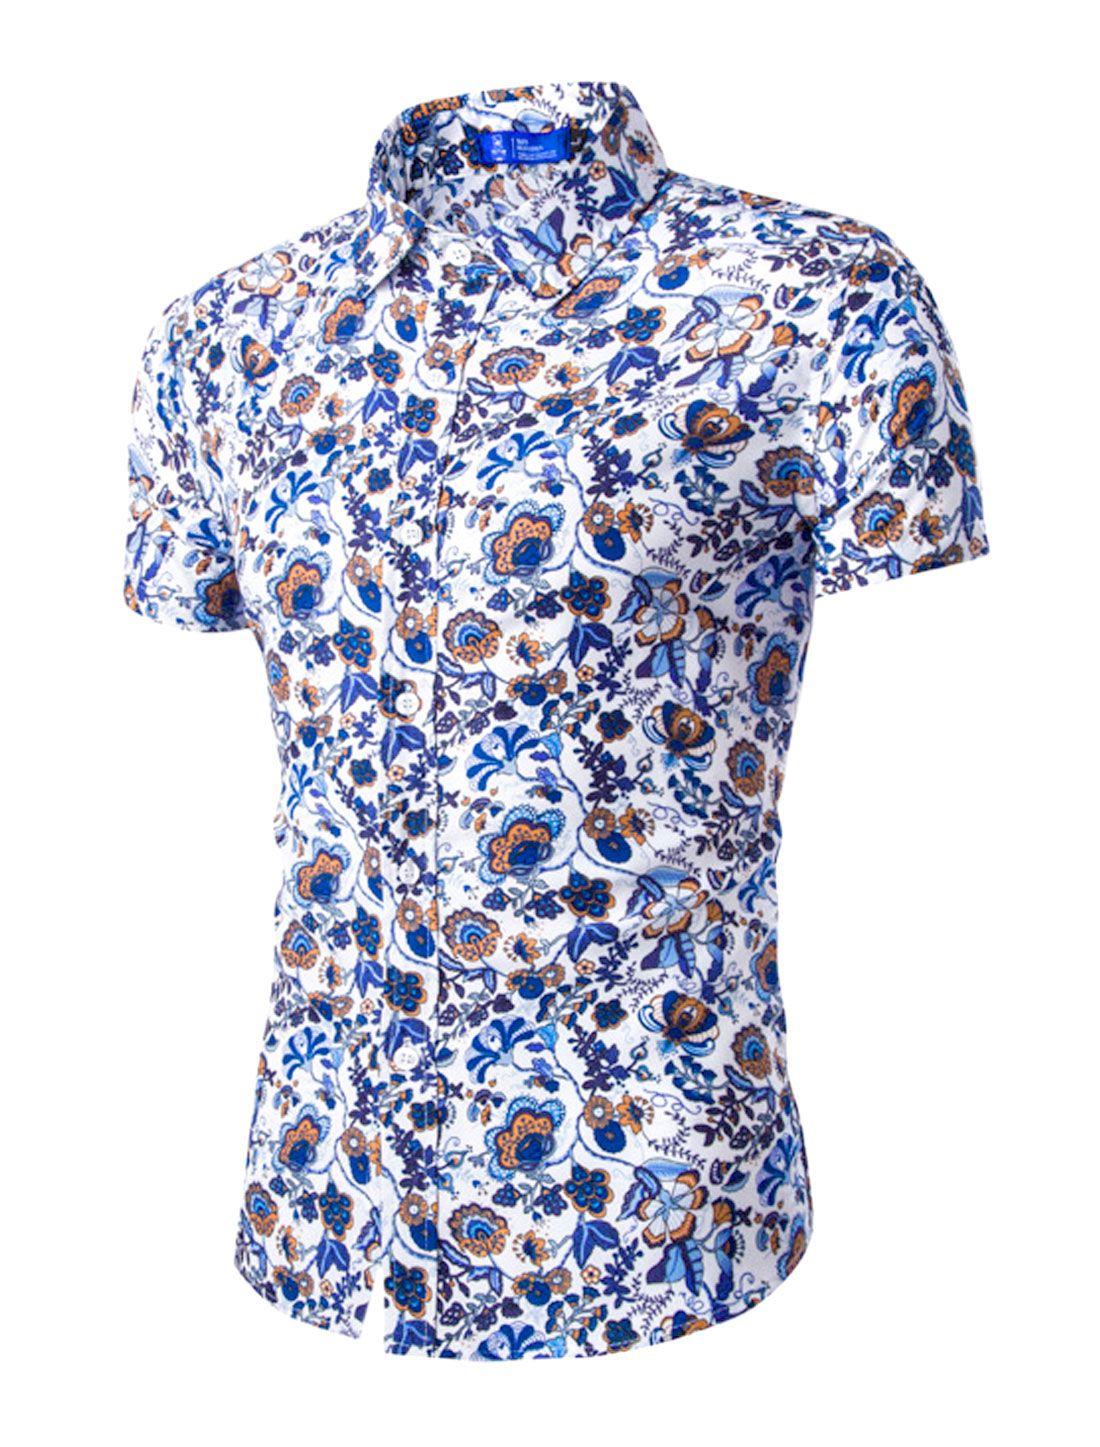 Men Point Collar Short Sleeves Floral Print Button Down Shirt Blue M